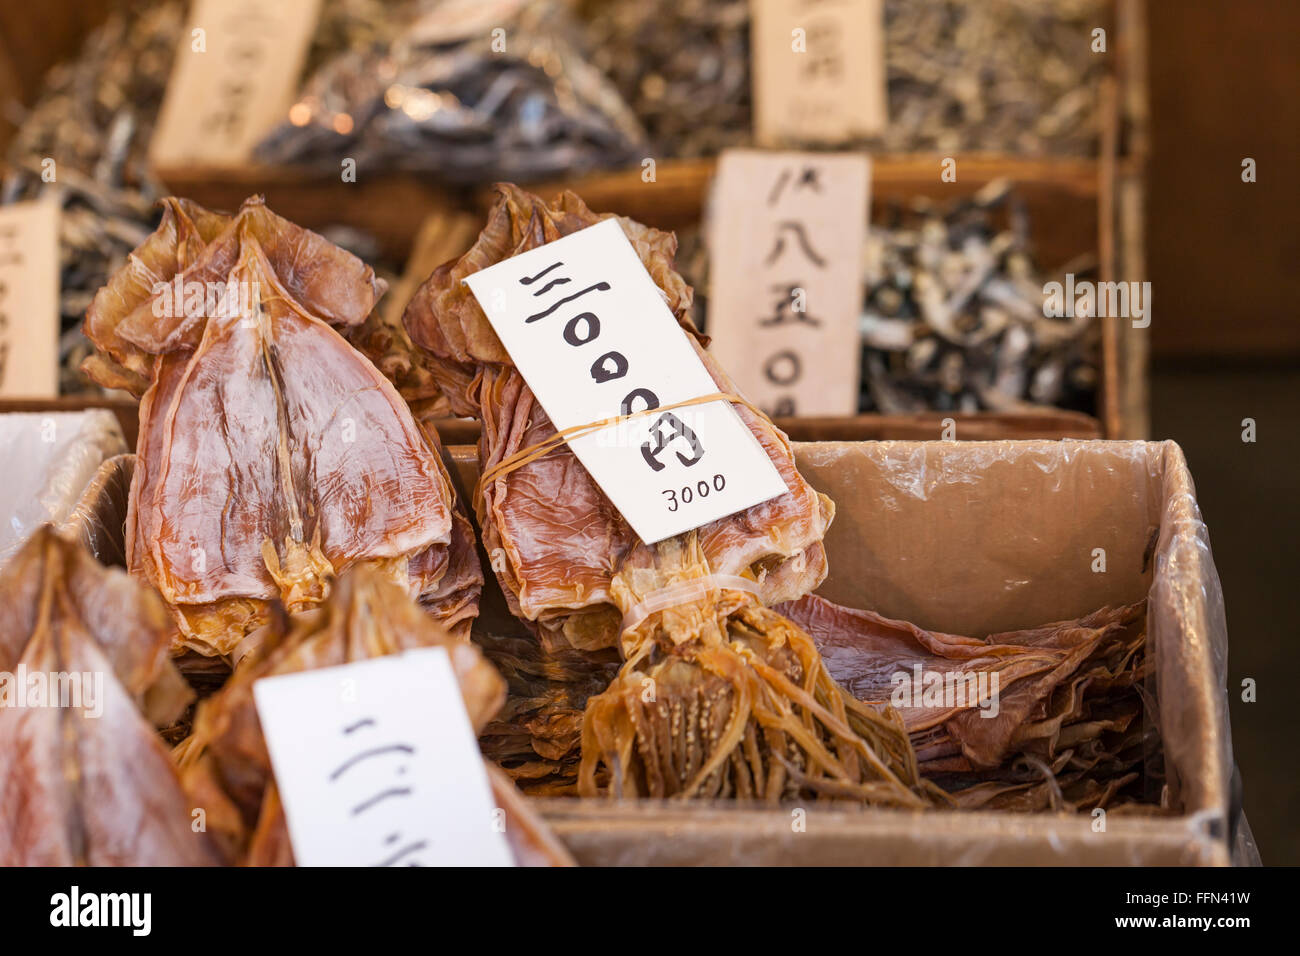 Dried fish, seafood product at market from Japan. Stock Photo